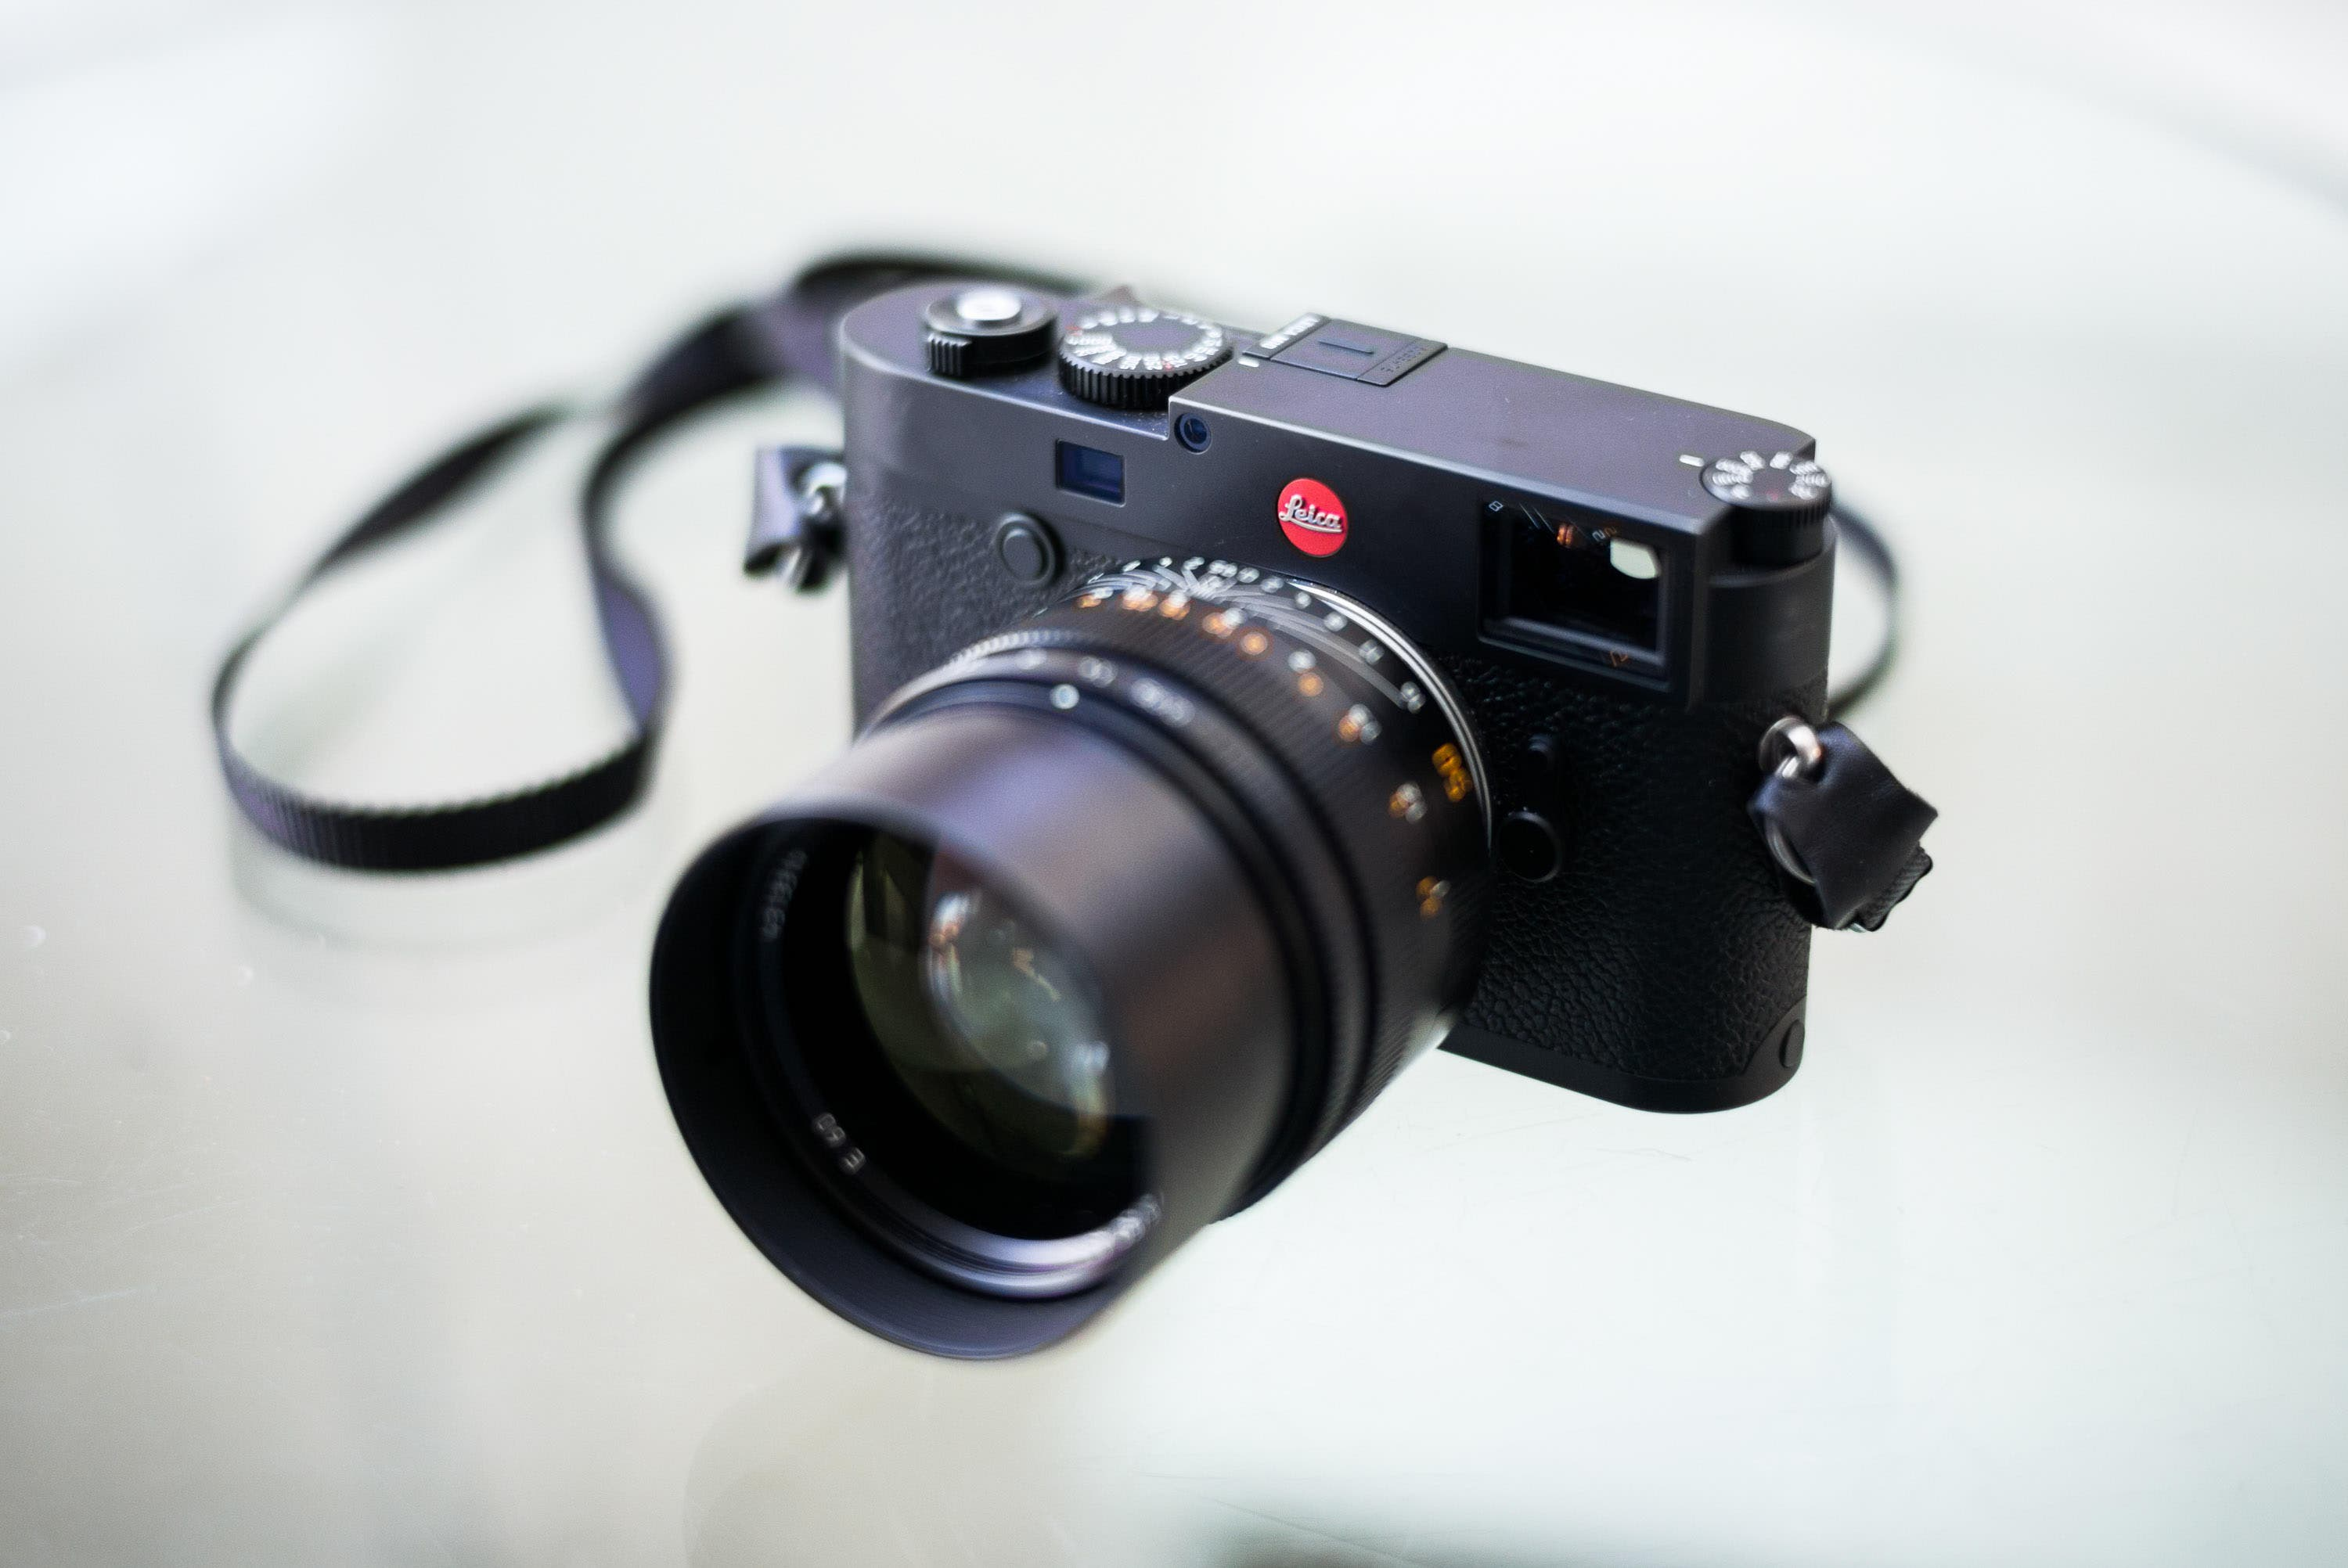 Douglas Fry's Love Story About the Leica M10 and a 50mm